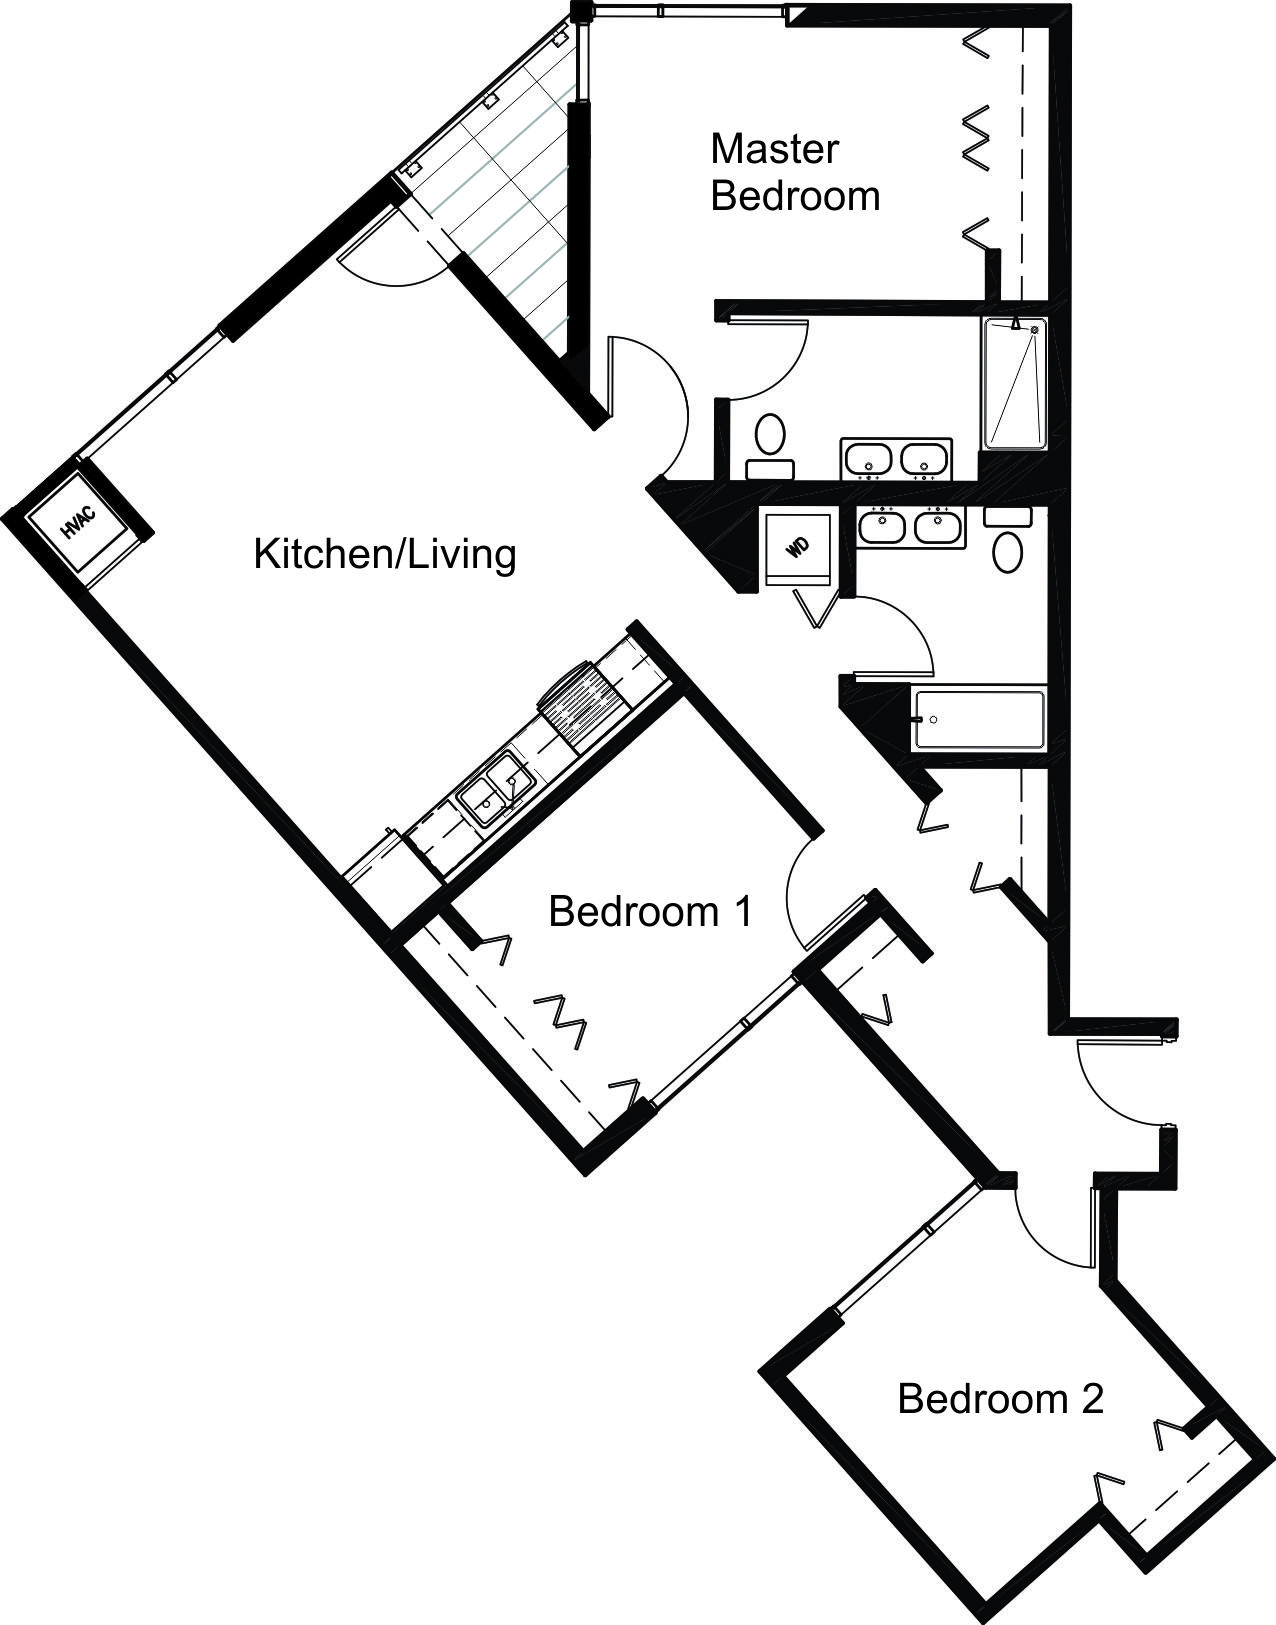 Unit 08 Floor Plan